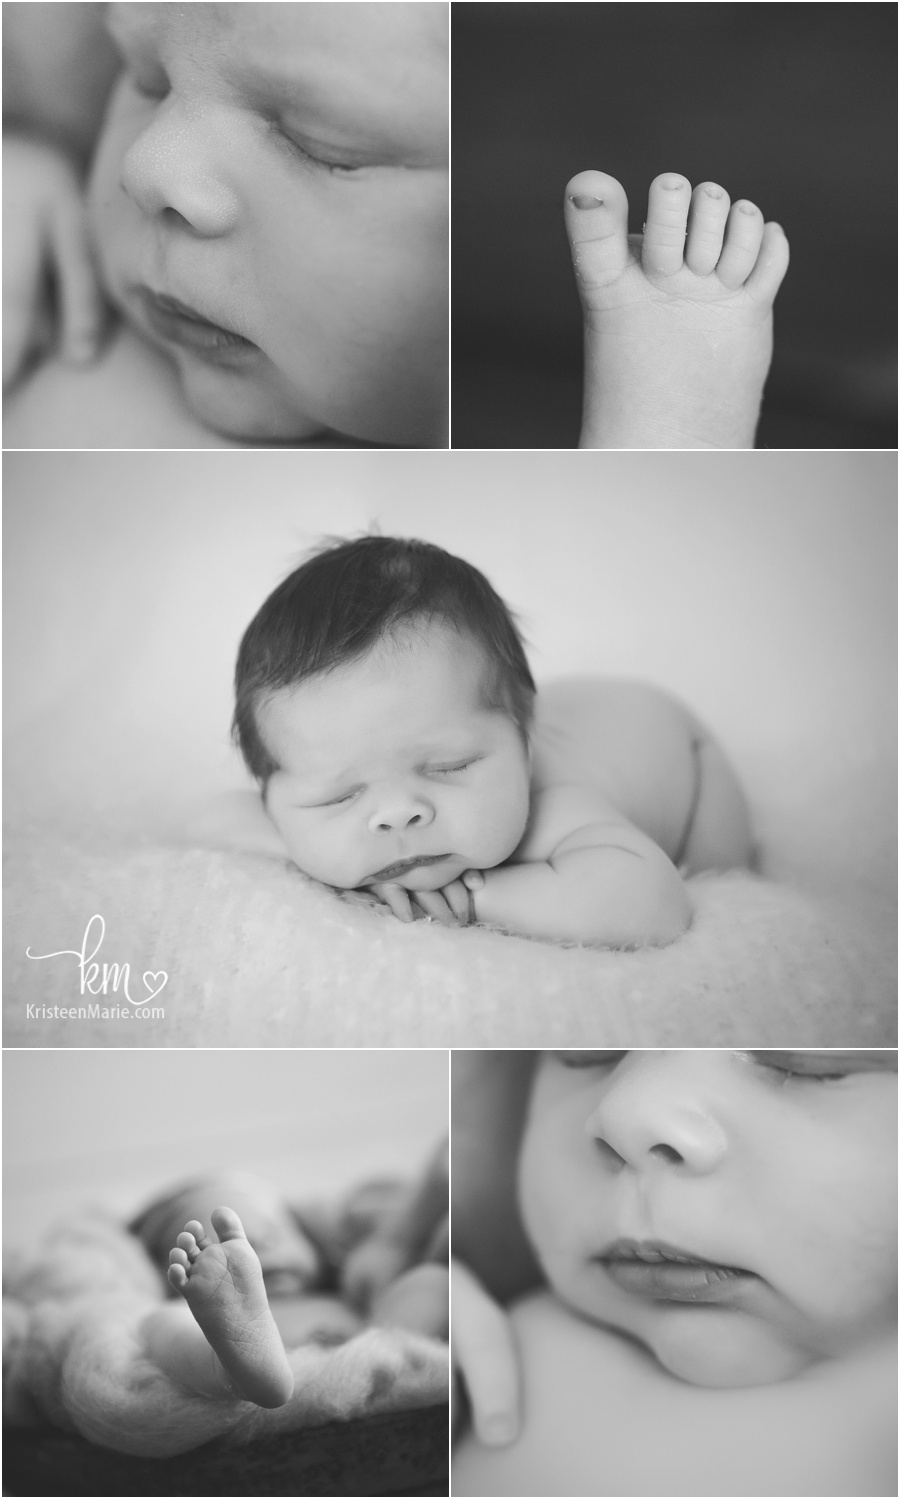 newborn baby features in black and white